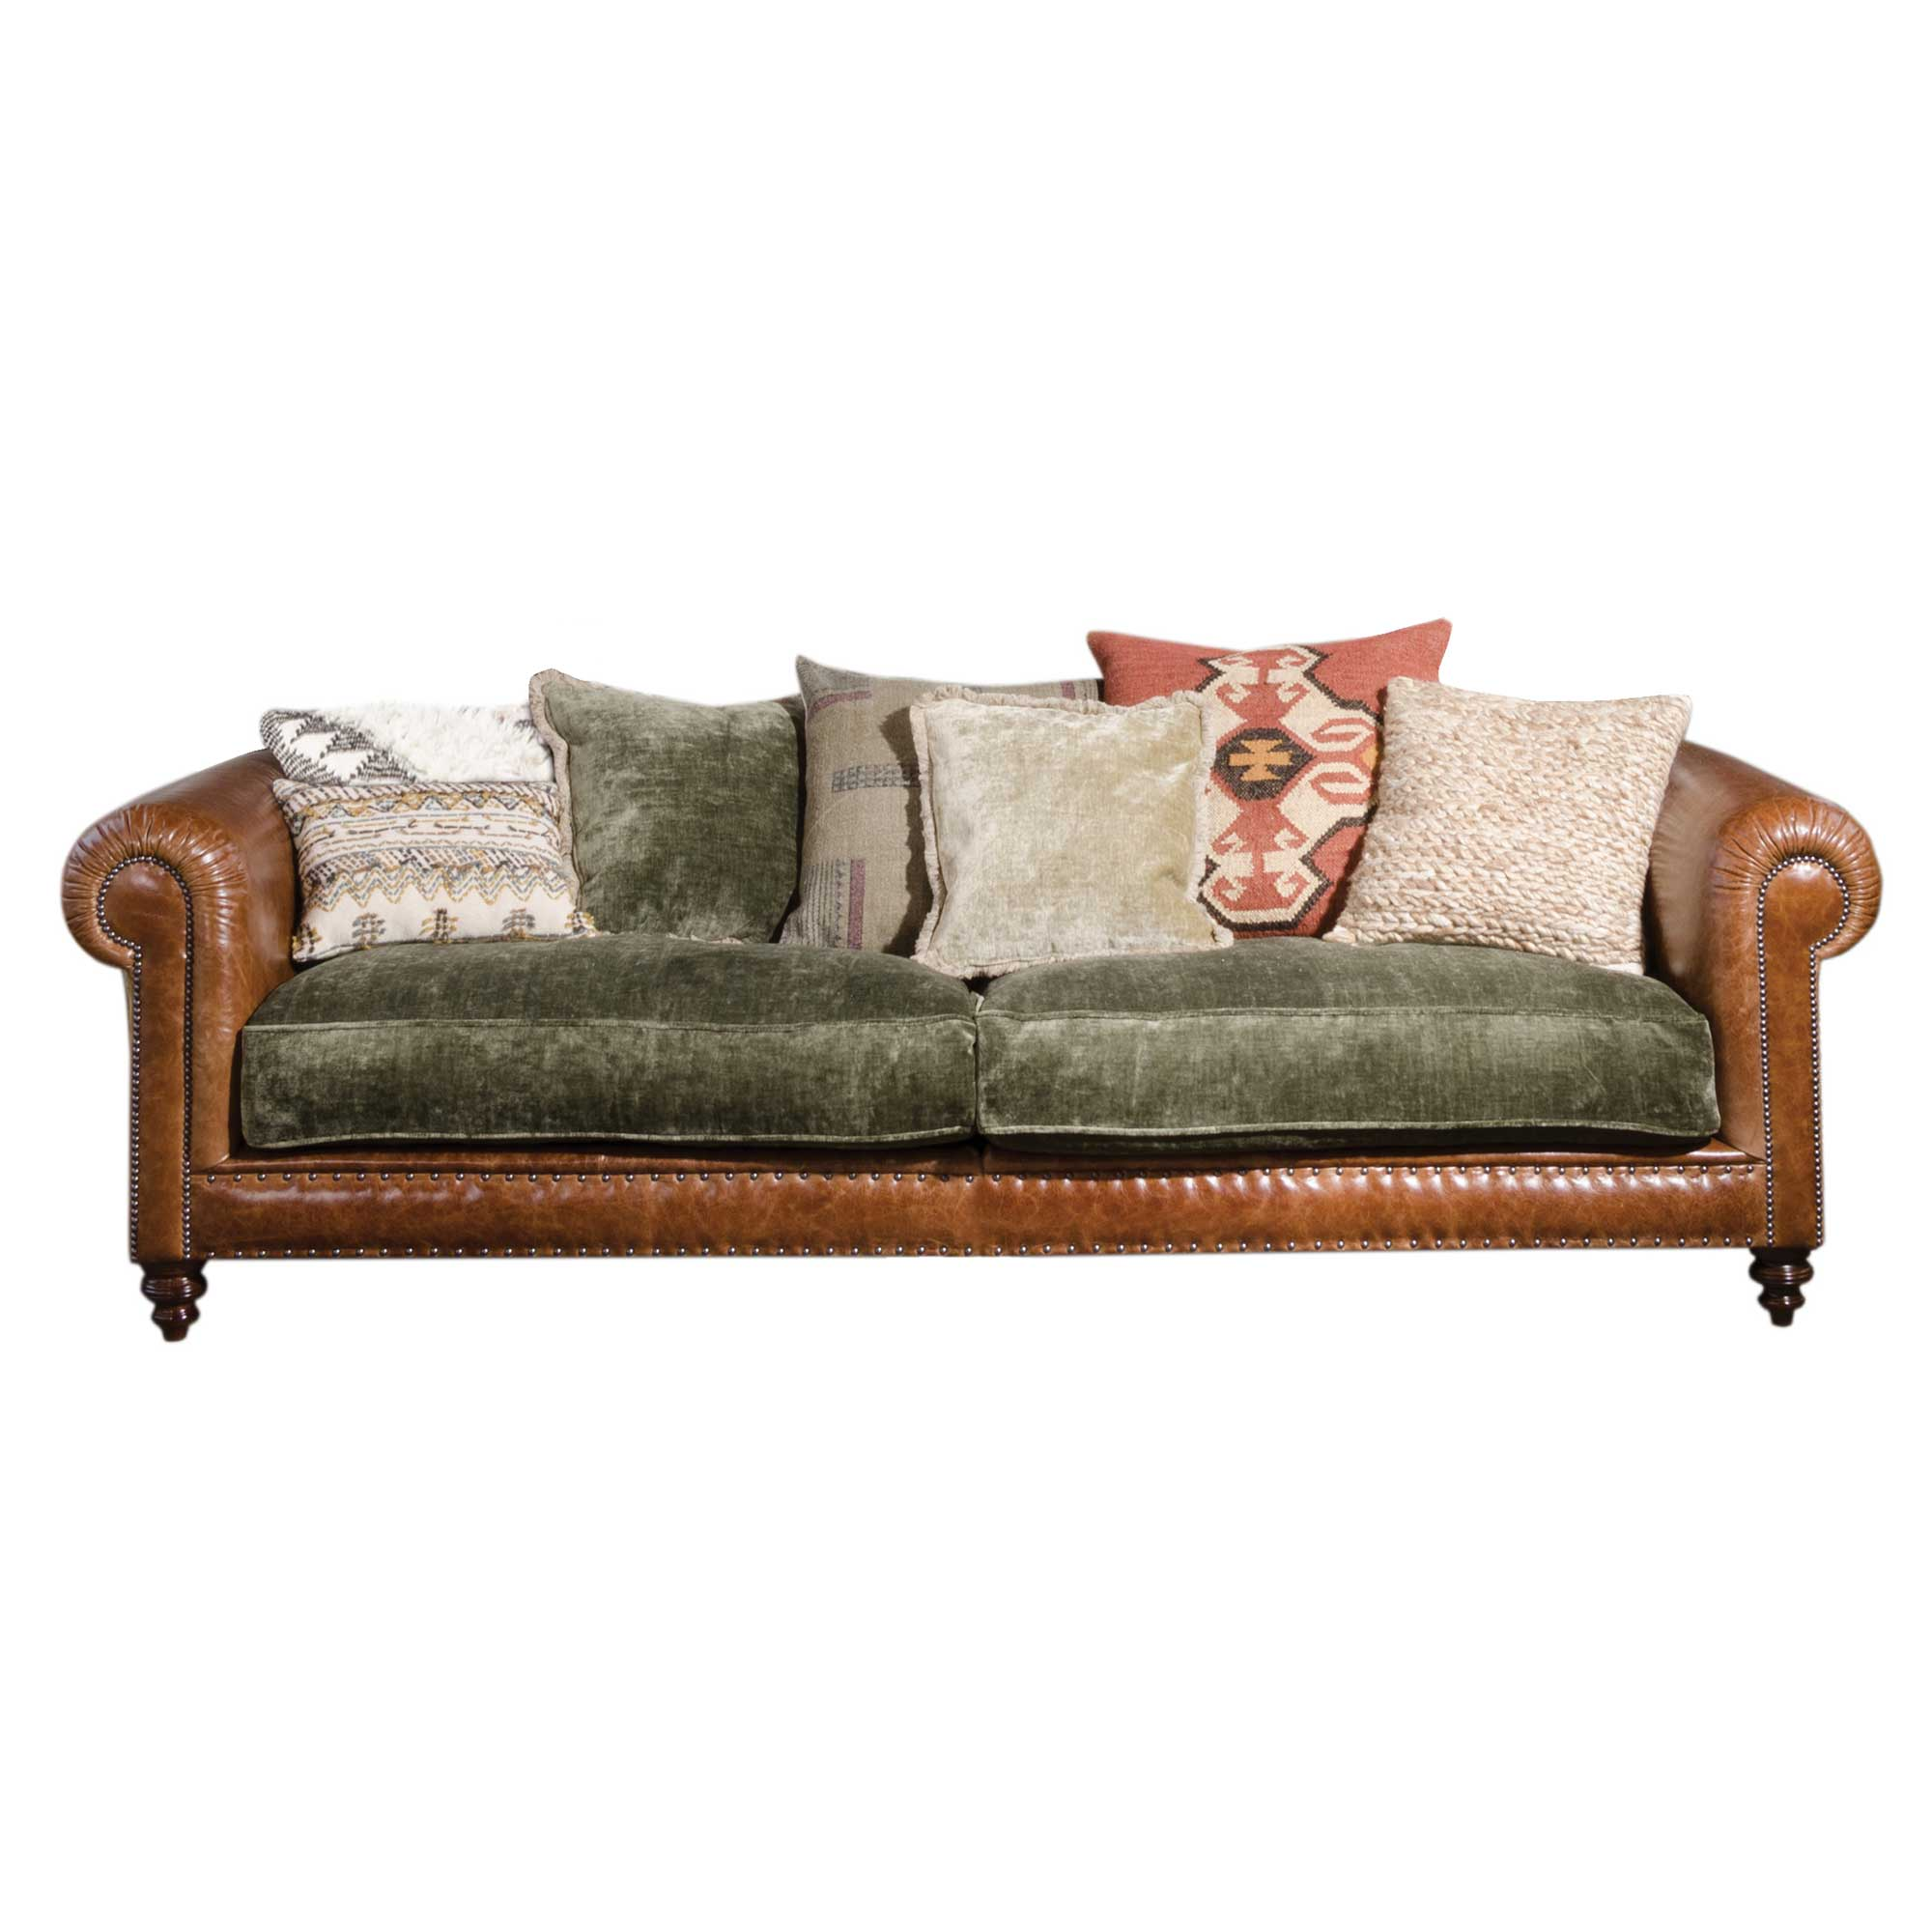 CONSTABLE MIDI SOFA - FRONT DETAIL